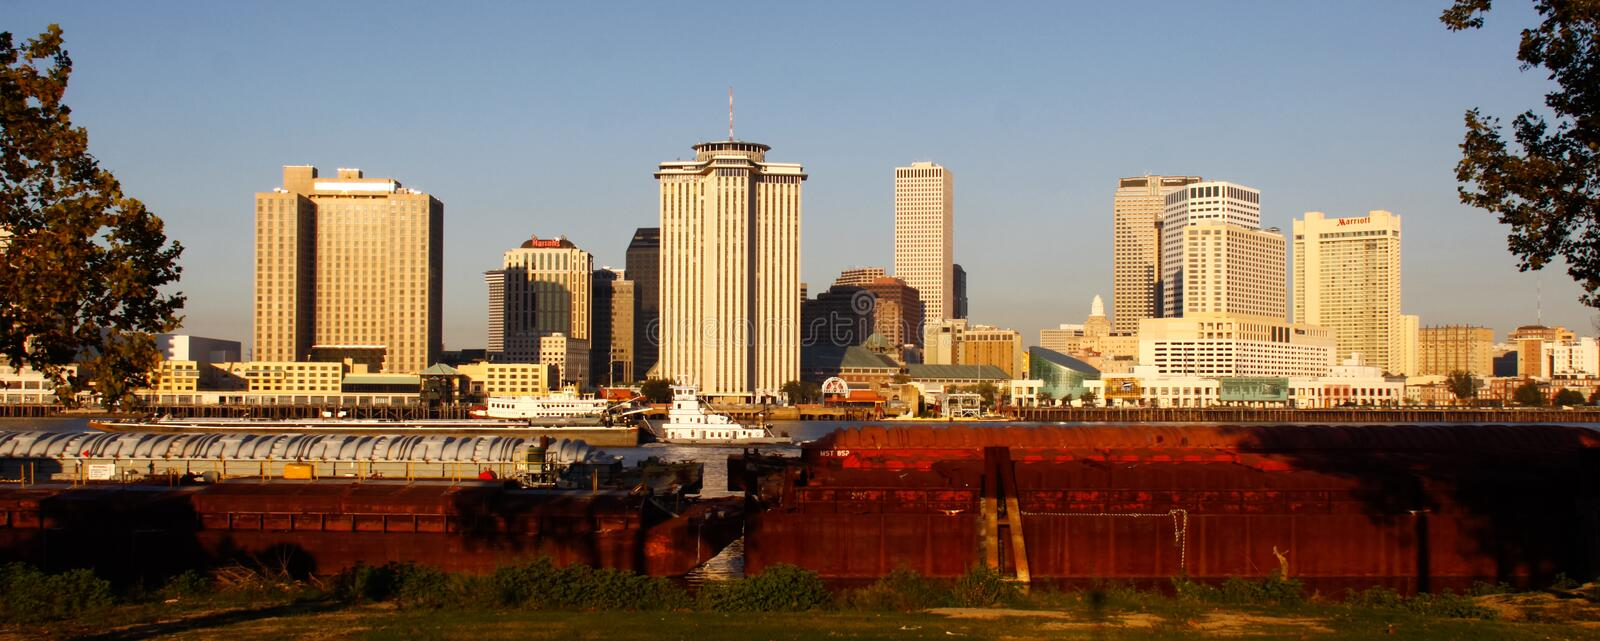 New Orleans - Morning Skyline from Algiers. A shot from the levy along the edge of the Mississippi River in Algiers, across from downtown New Orleans stock photos